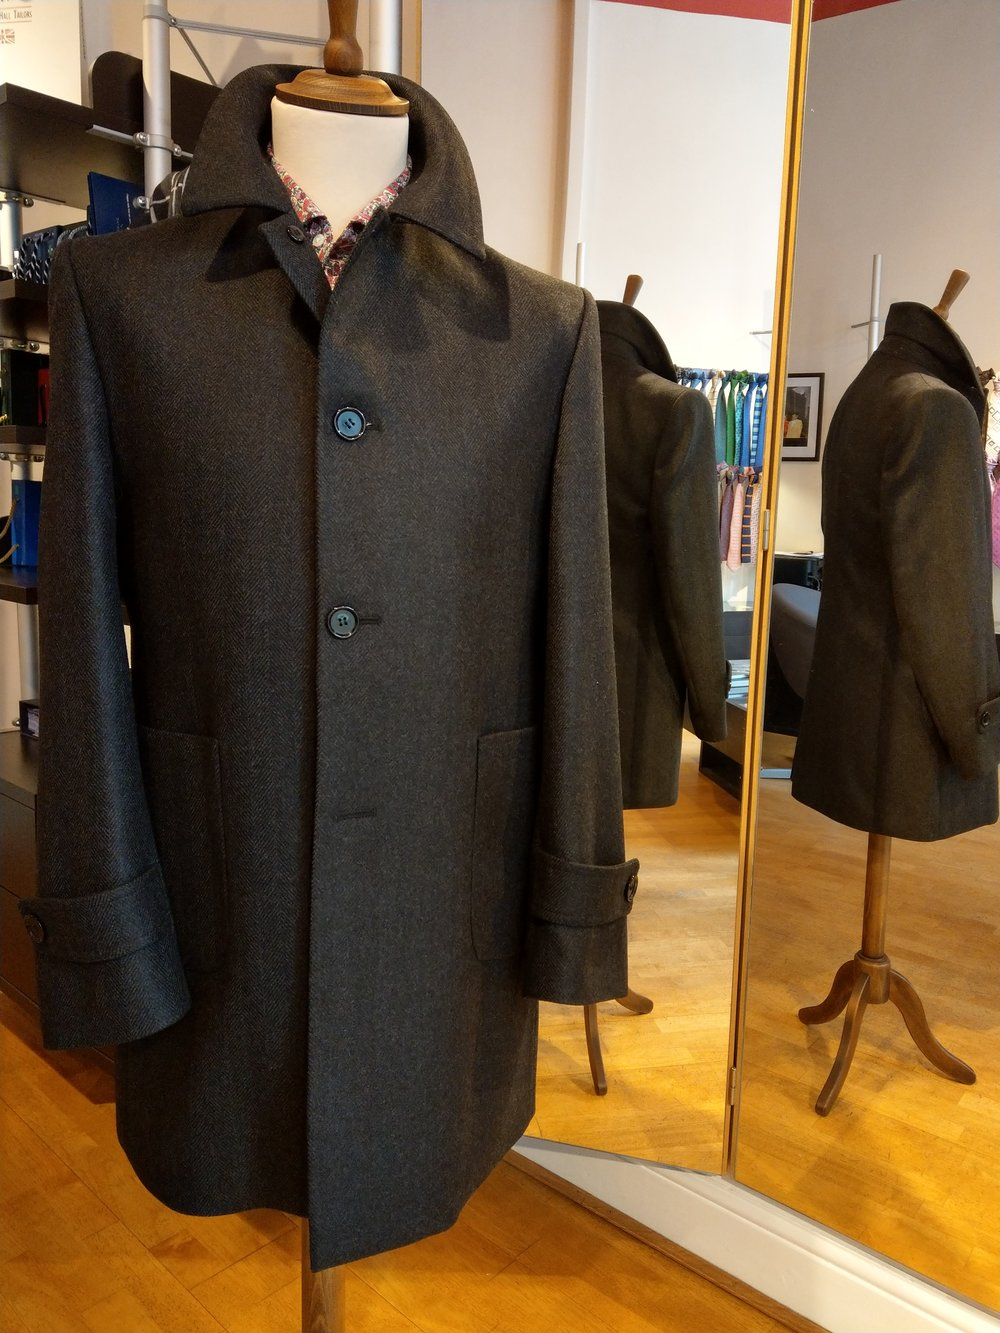 wool-cashmere-coat-susannah-hall-bespoke-british-made-tailor.jpg